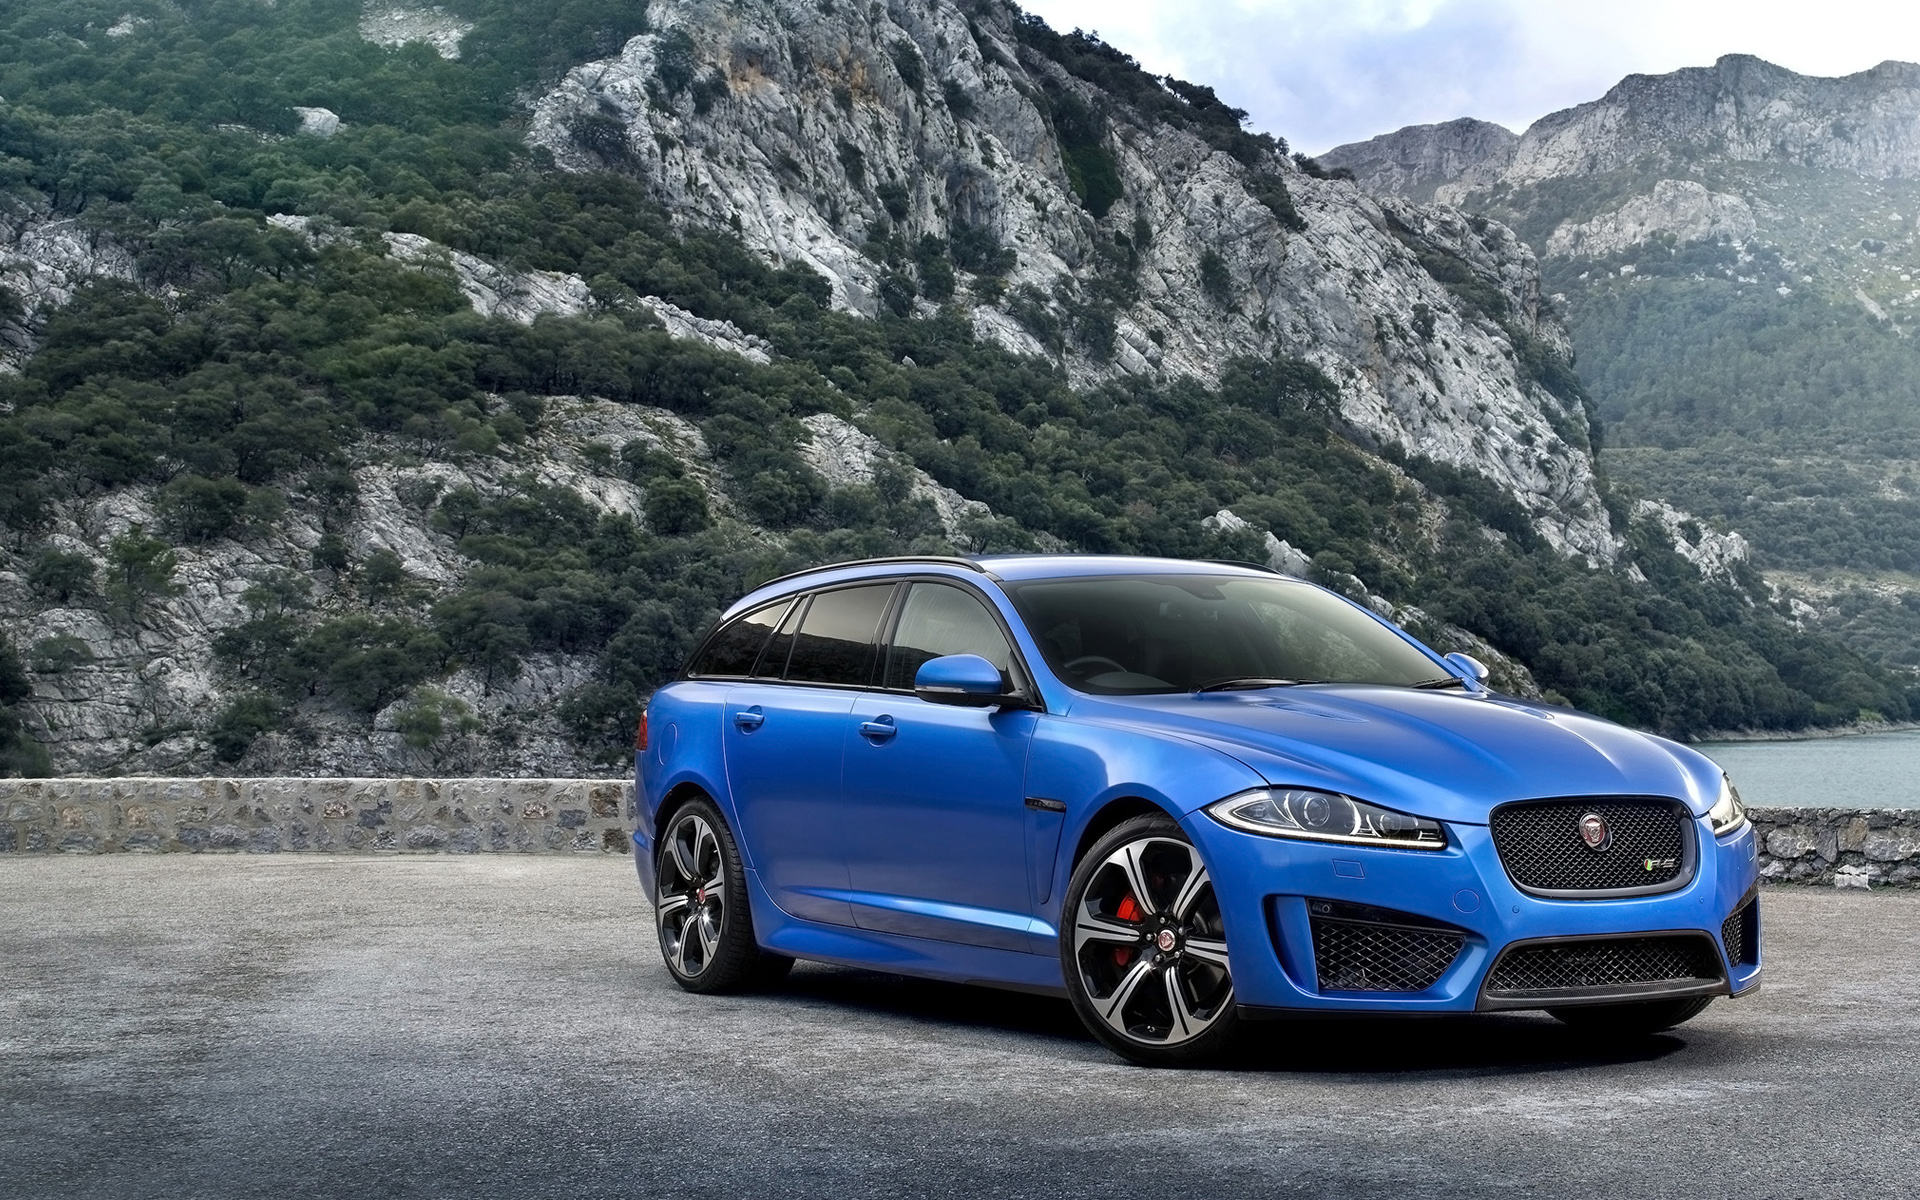 jaguar xfr s sportbrake 2015 wallpaper hd car wallpapers. Black Bedroom Furniture Sets. Home Design Ideas